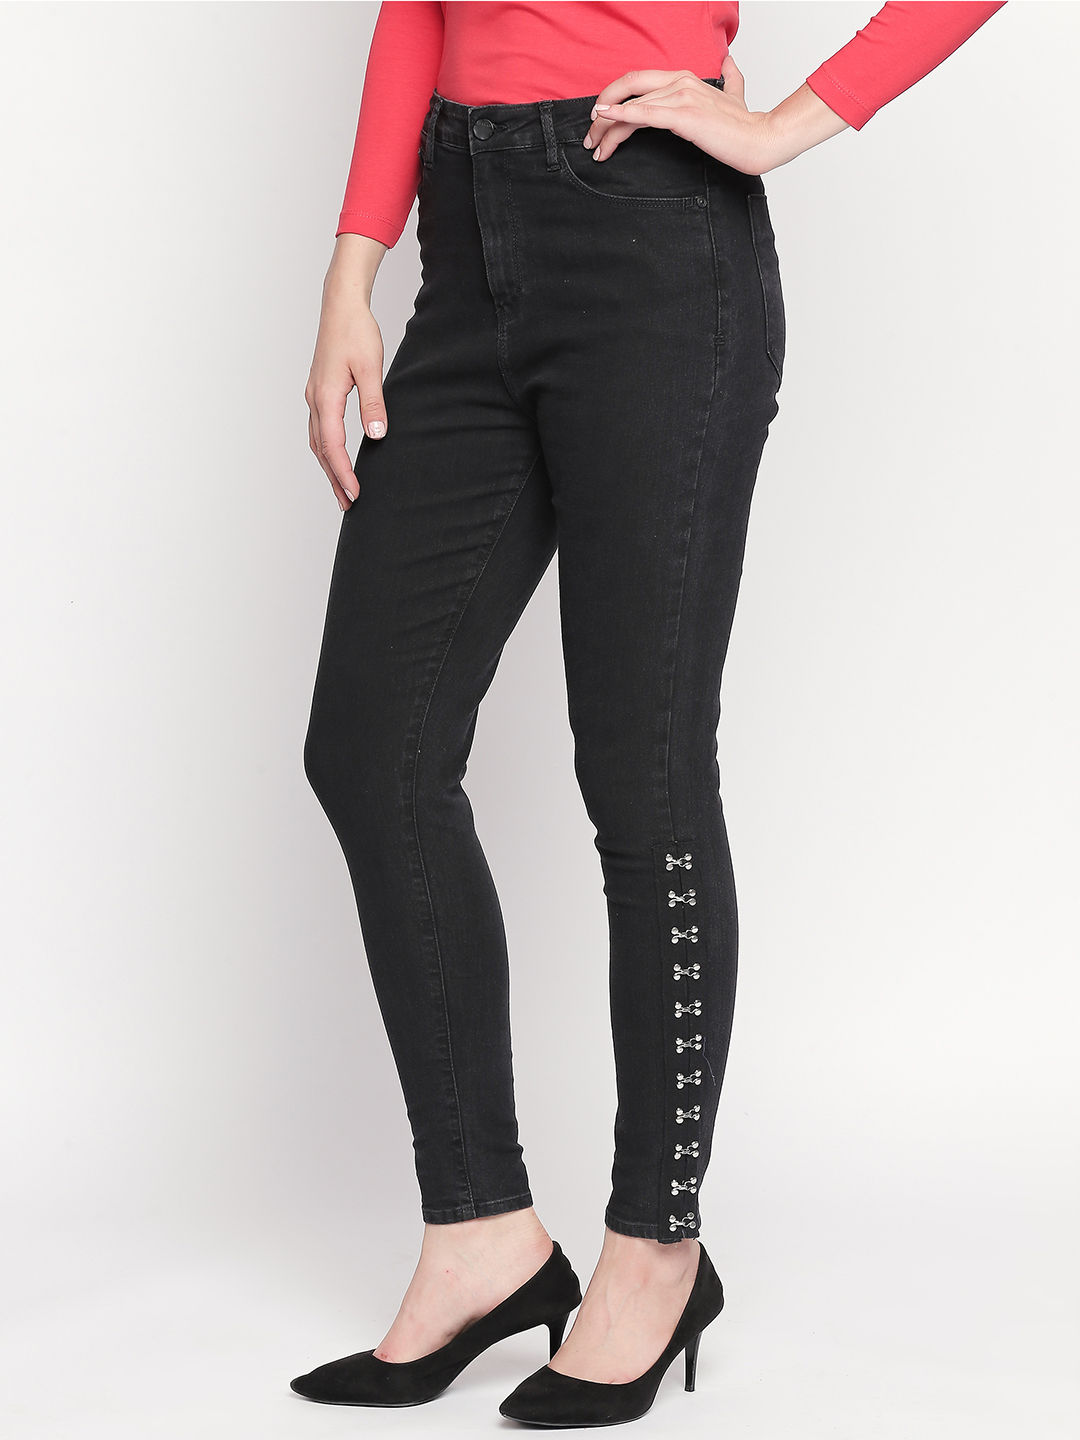 Black Solid High Rise Jeans